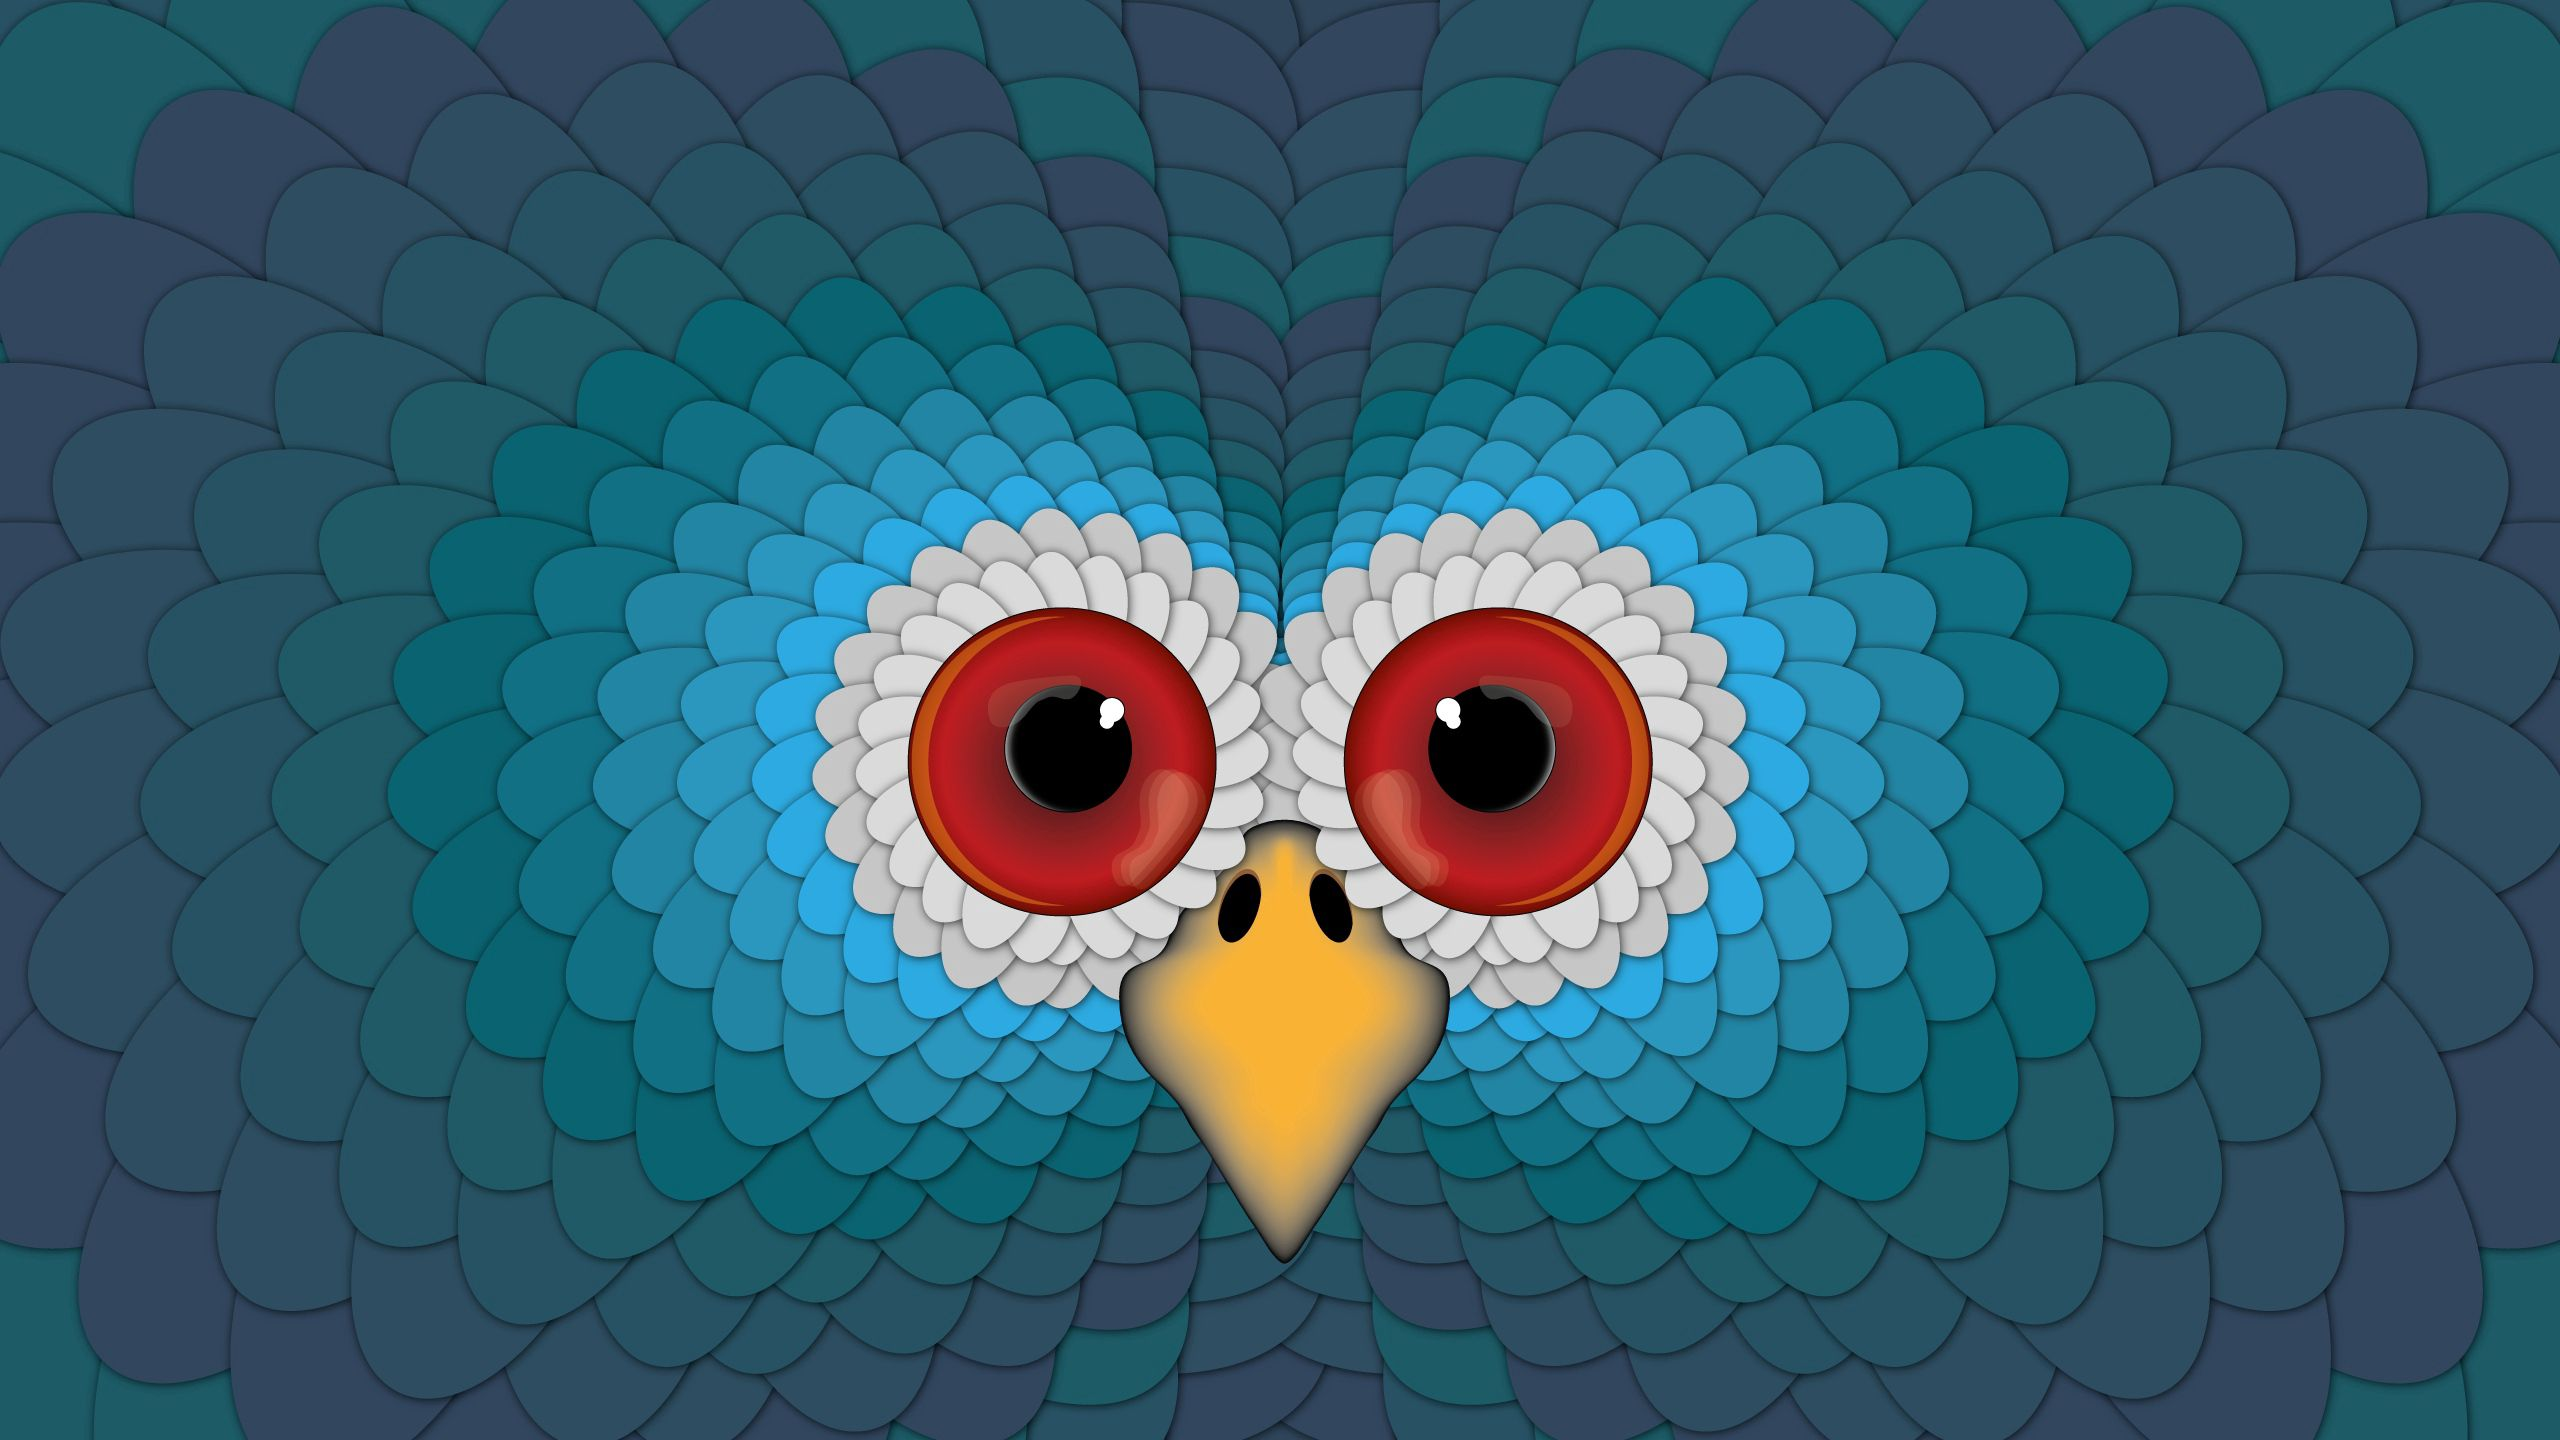 125616 download wallpaper Vector, Owl, Eyes, Beak, Bright, Surface screensavers and pictures for free